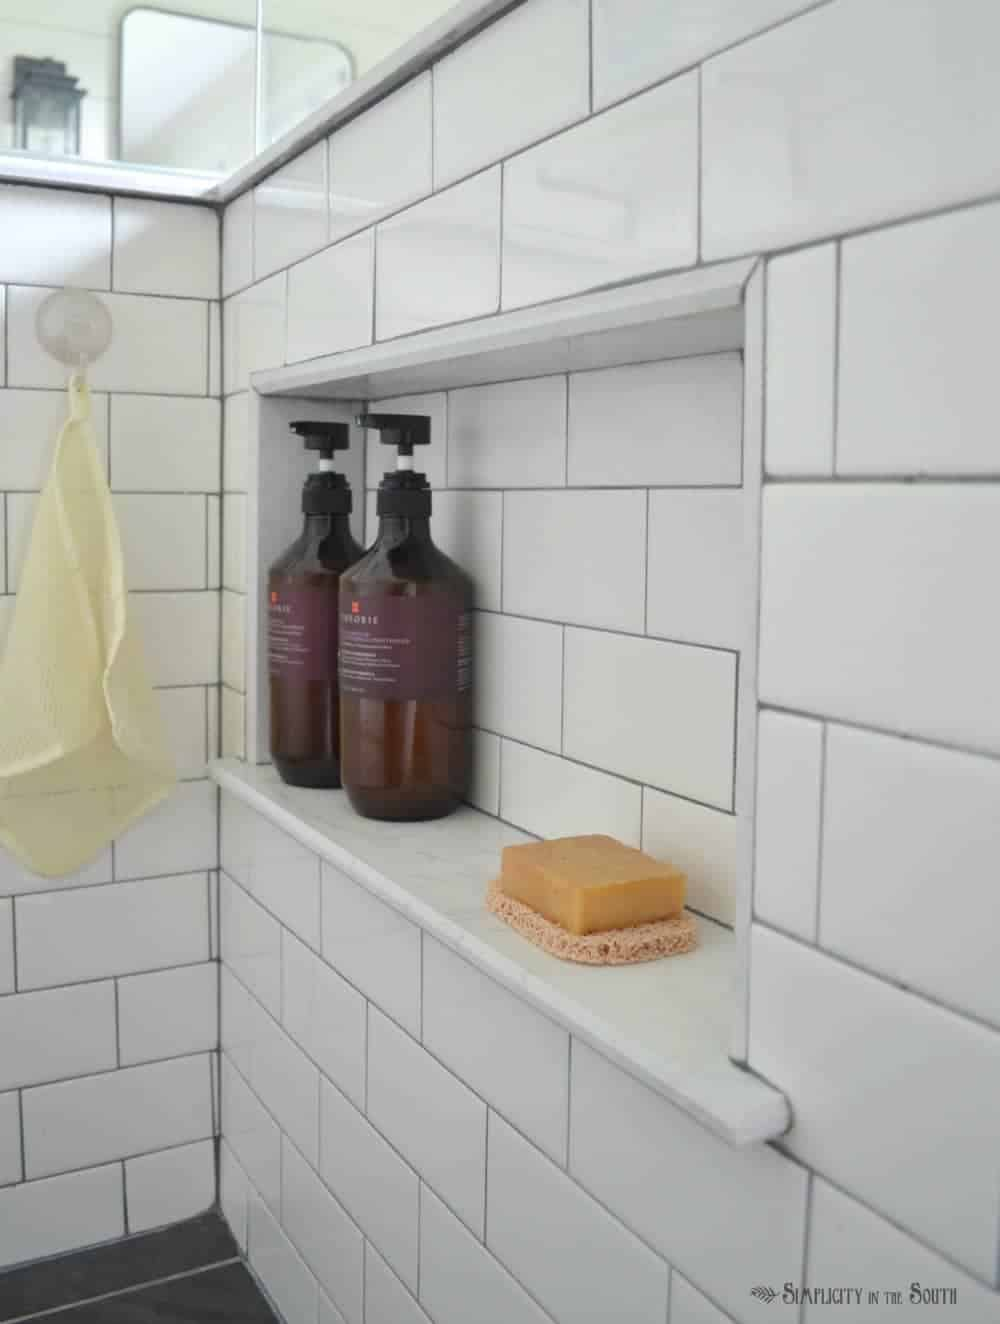 Add a hidden cubby in the shower for soap and shampoo. This is a good way to add storage in a bathroom and make it look neat and organized.